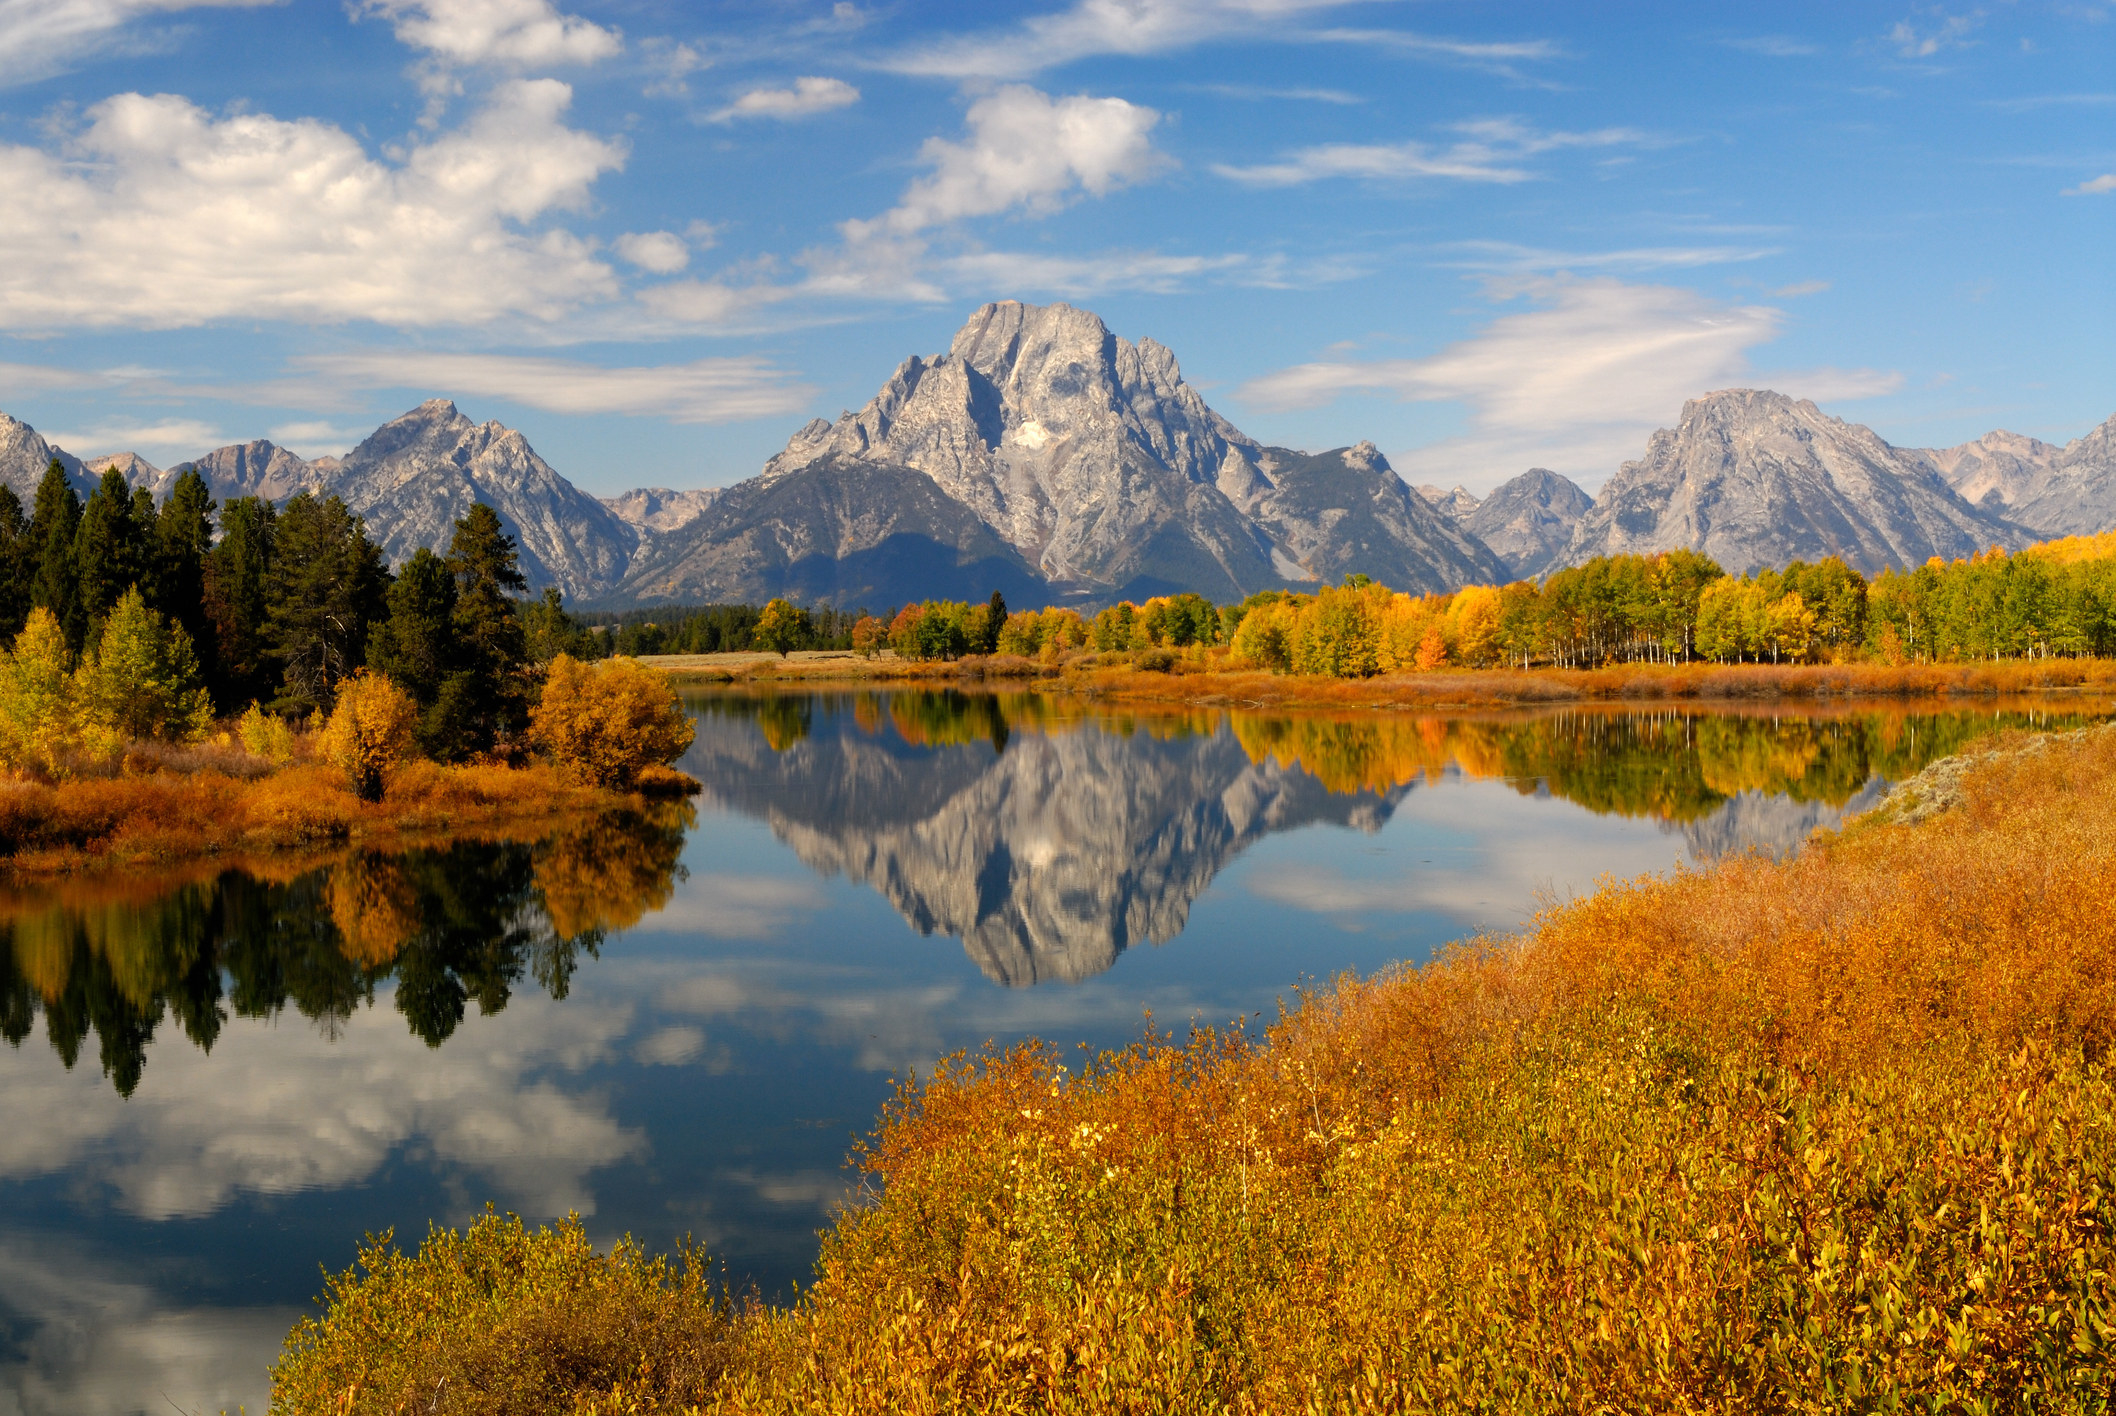 View of Mount Moran reflected in a river with fall foliage on the shores